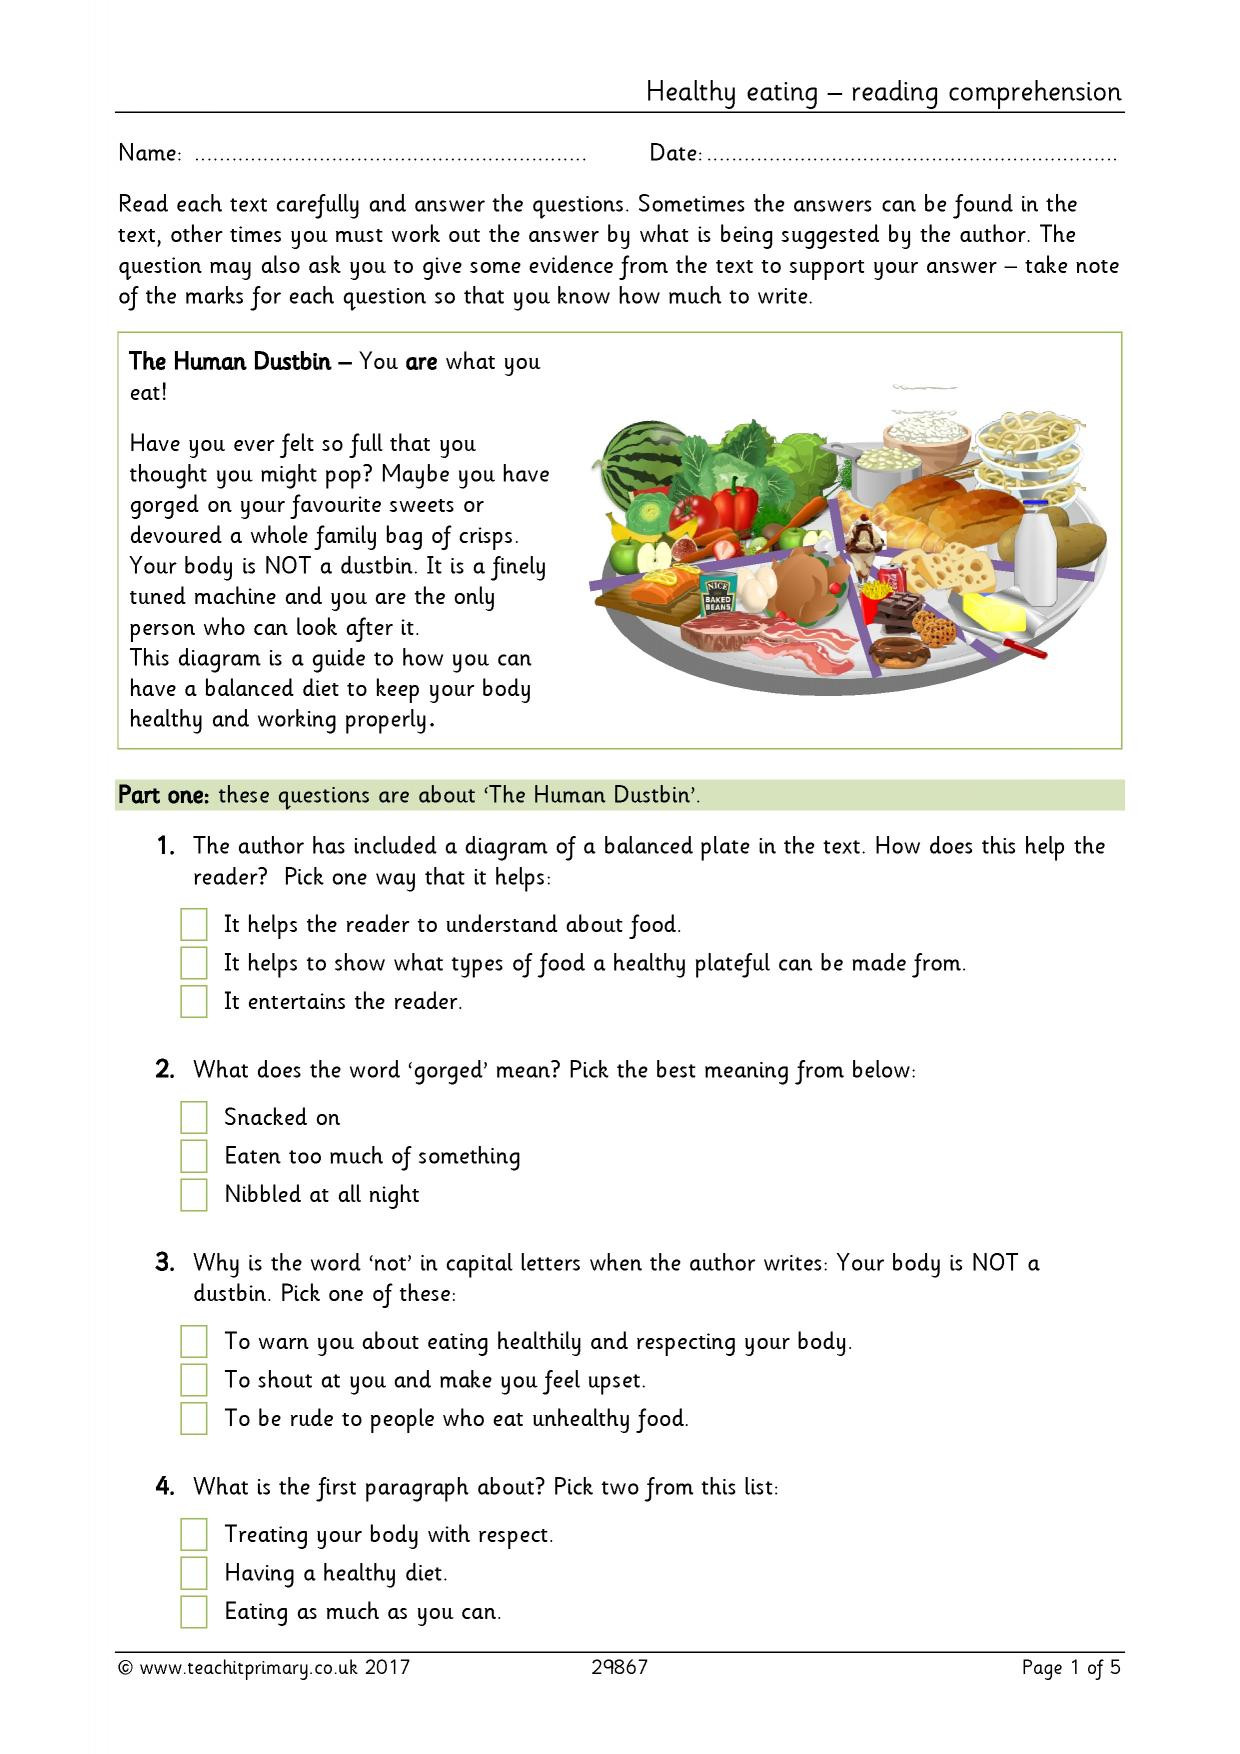 Recipe Reading Comprehension Worksheets Healthy Eating Reading Prehension Food